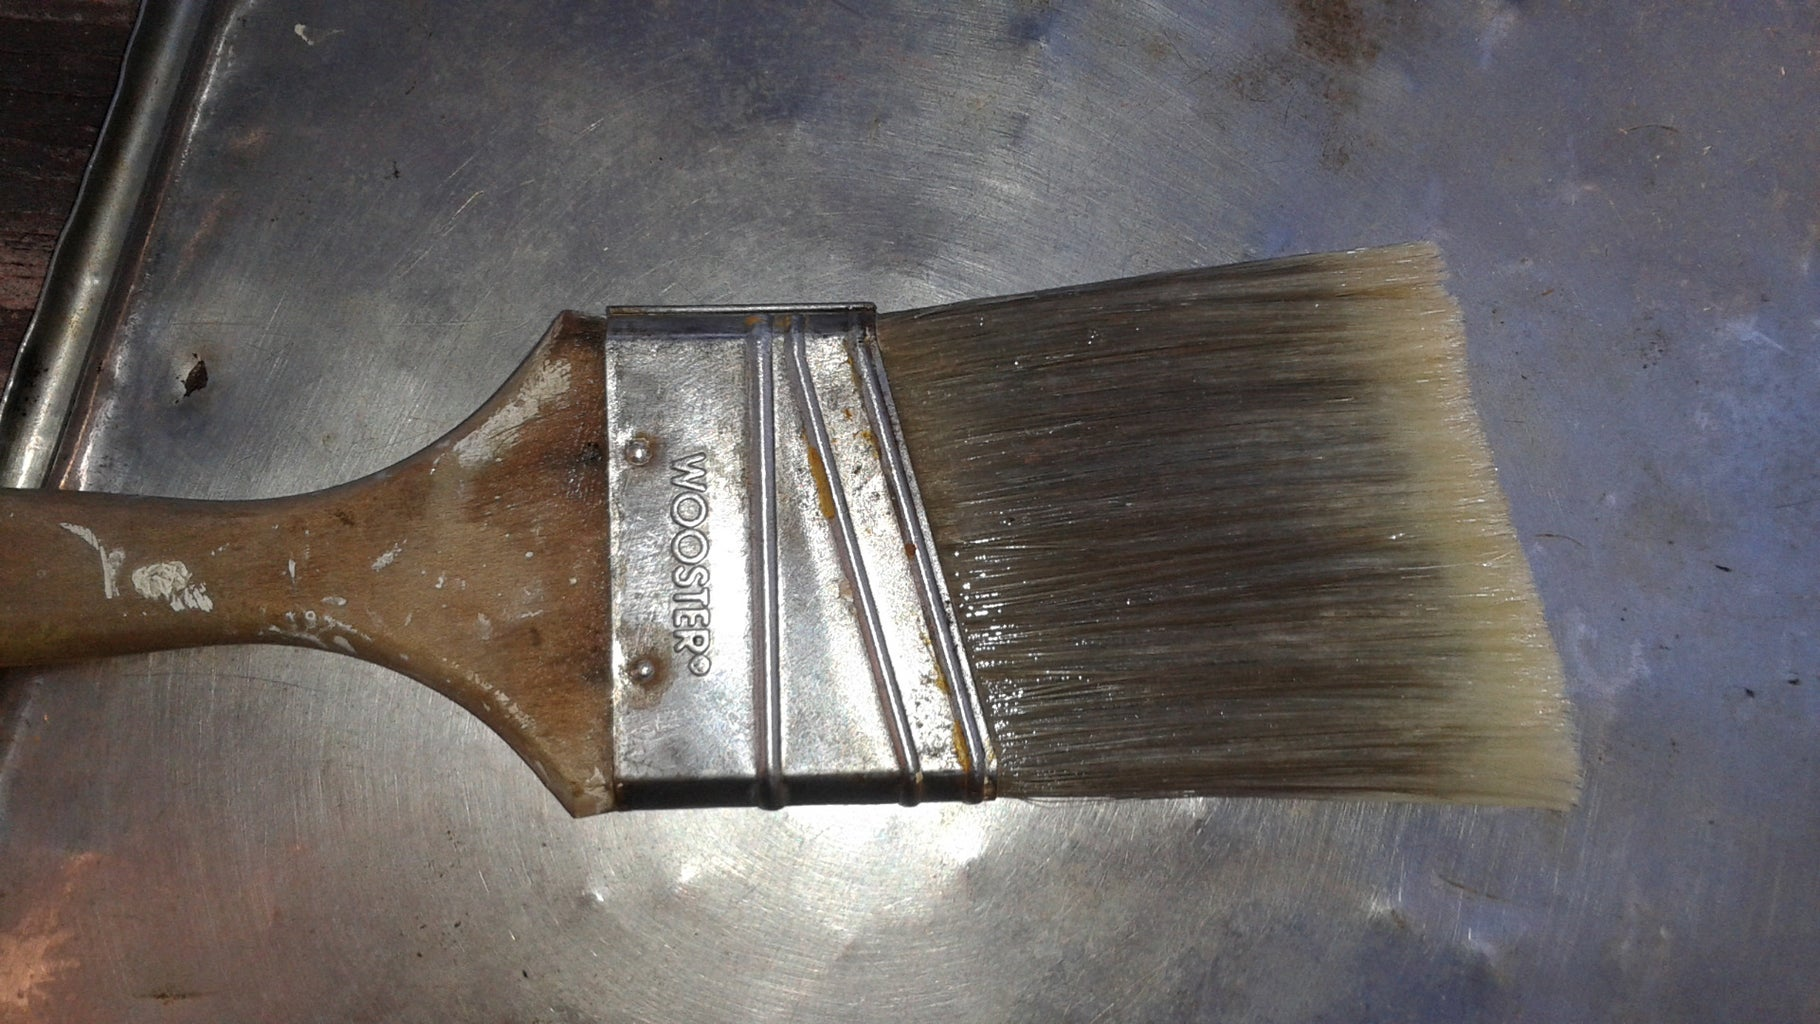 Shaping the Bristles